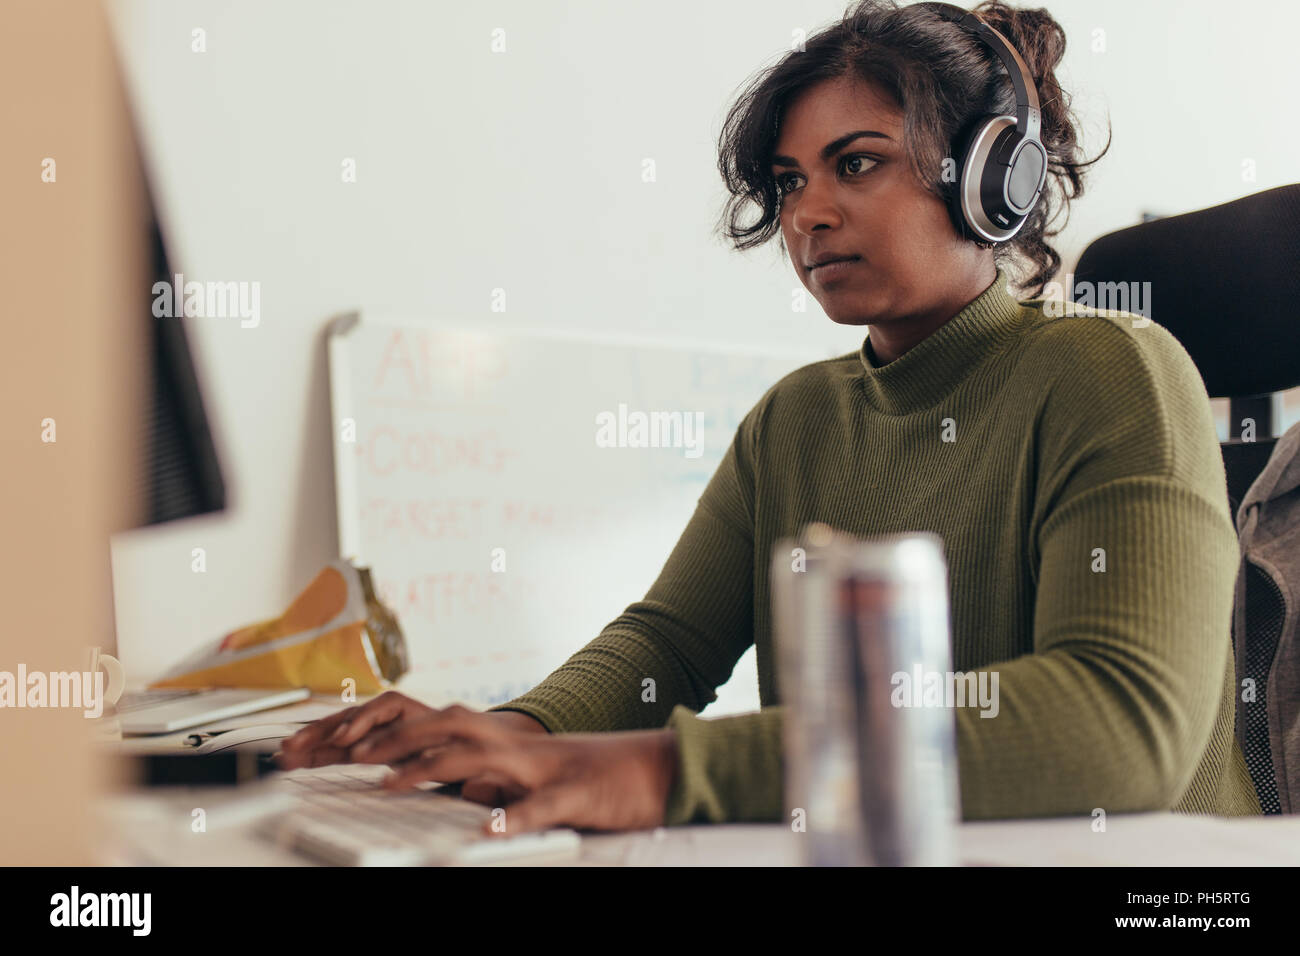 Female programmer working in a software developing company office. Woman wearing headphones coding on desktop computer. Stock Photo